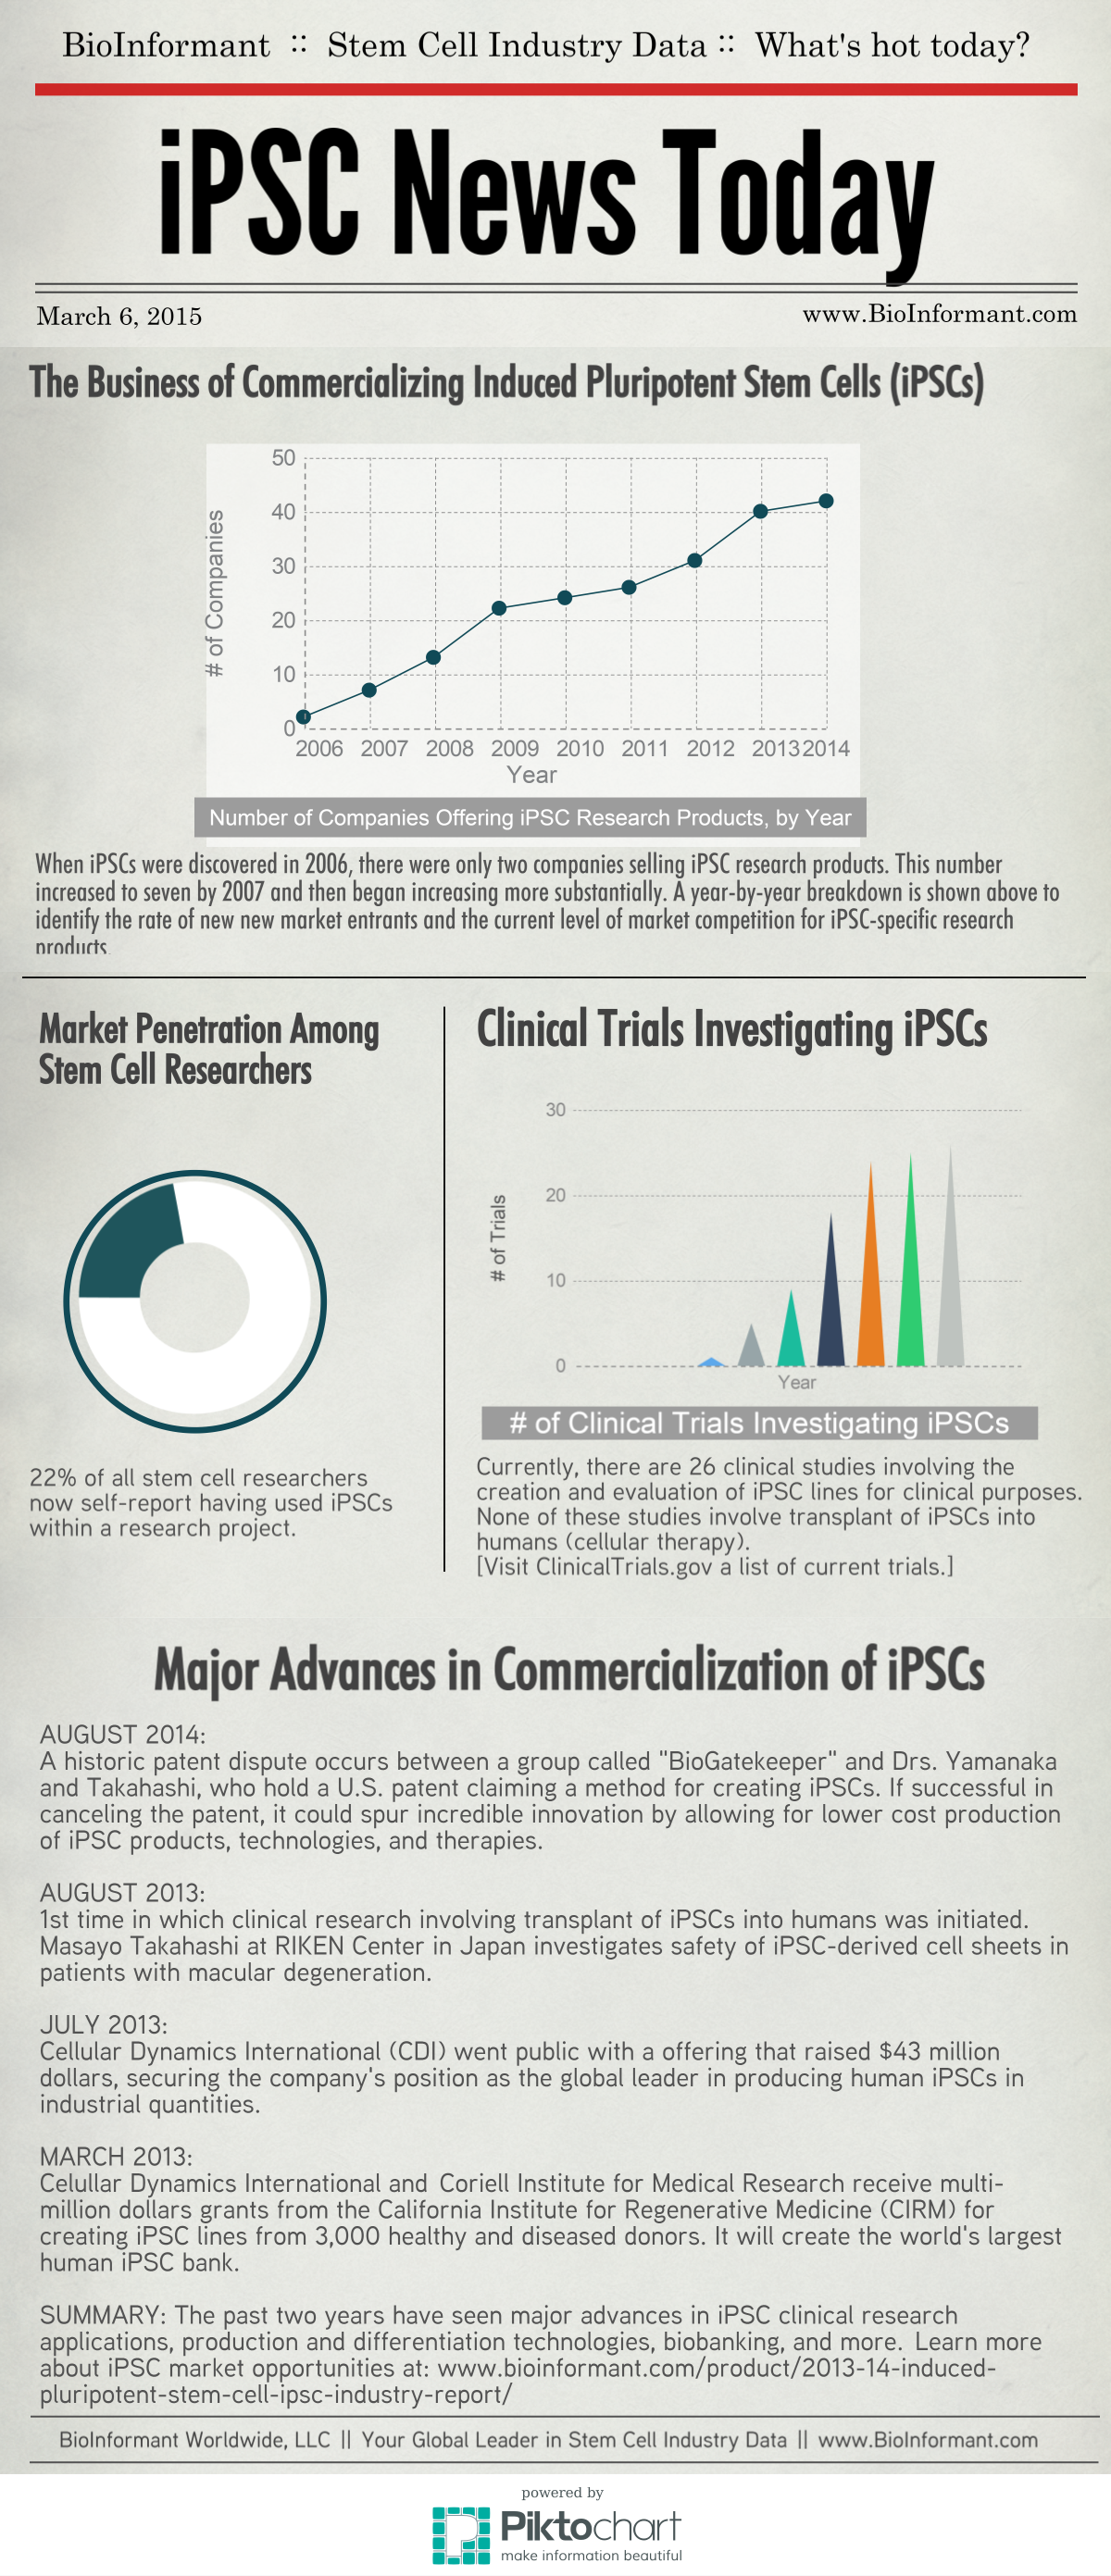 Business of Commercializing iPSCs - BioInformant.com - March 6, 2015